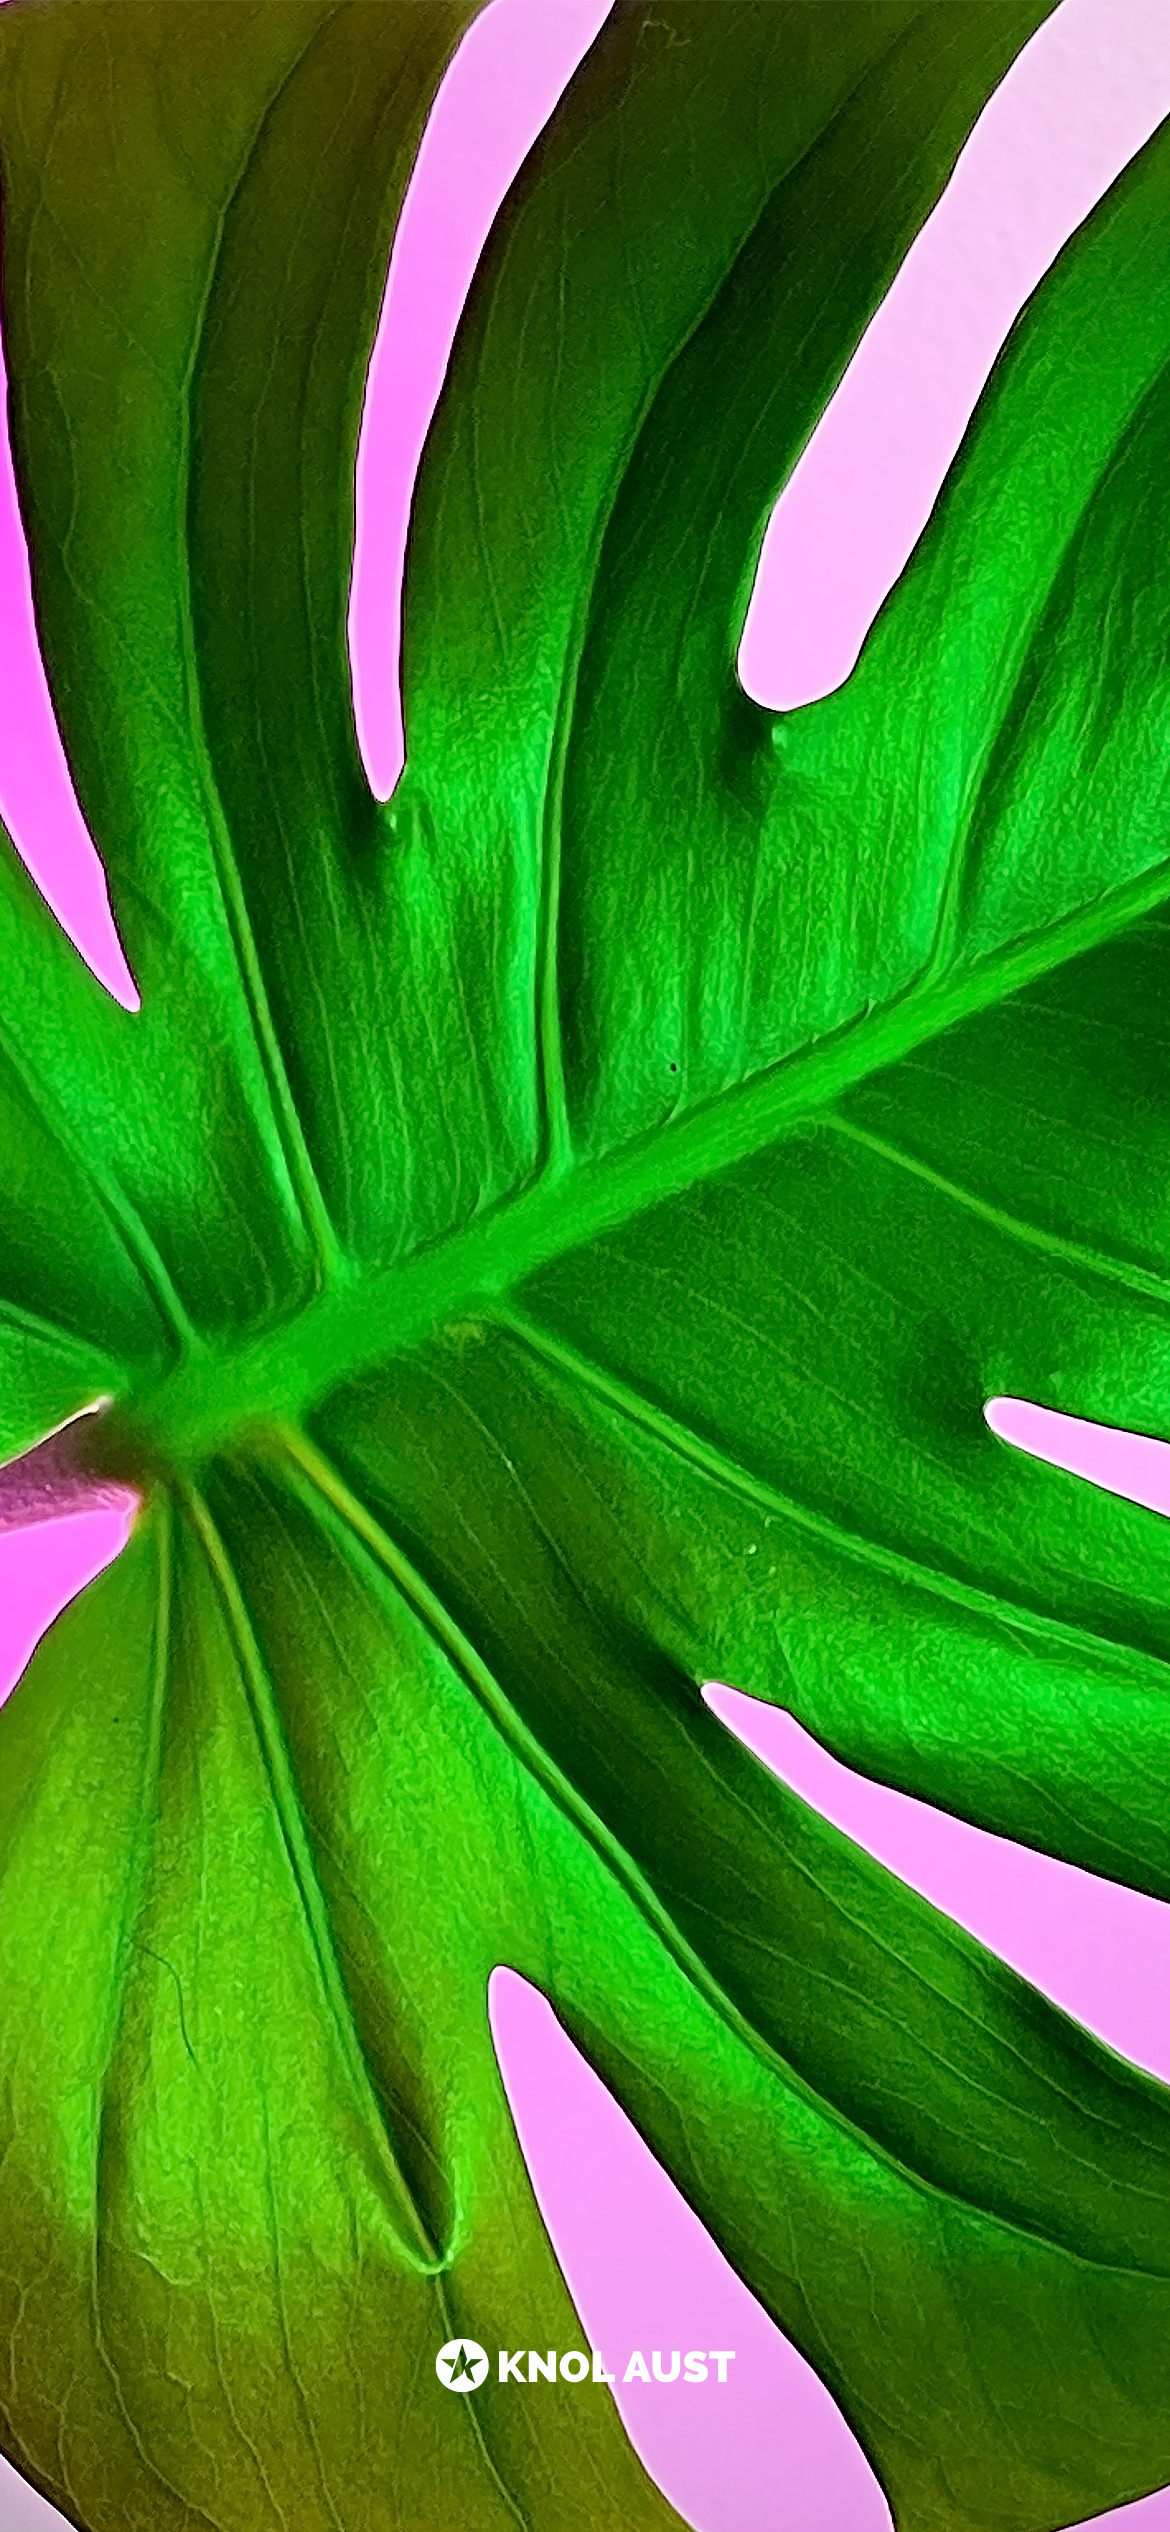 Photo of a monstera delicosa with a magenta background made for smartphone devices